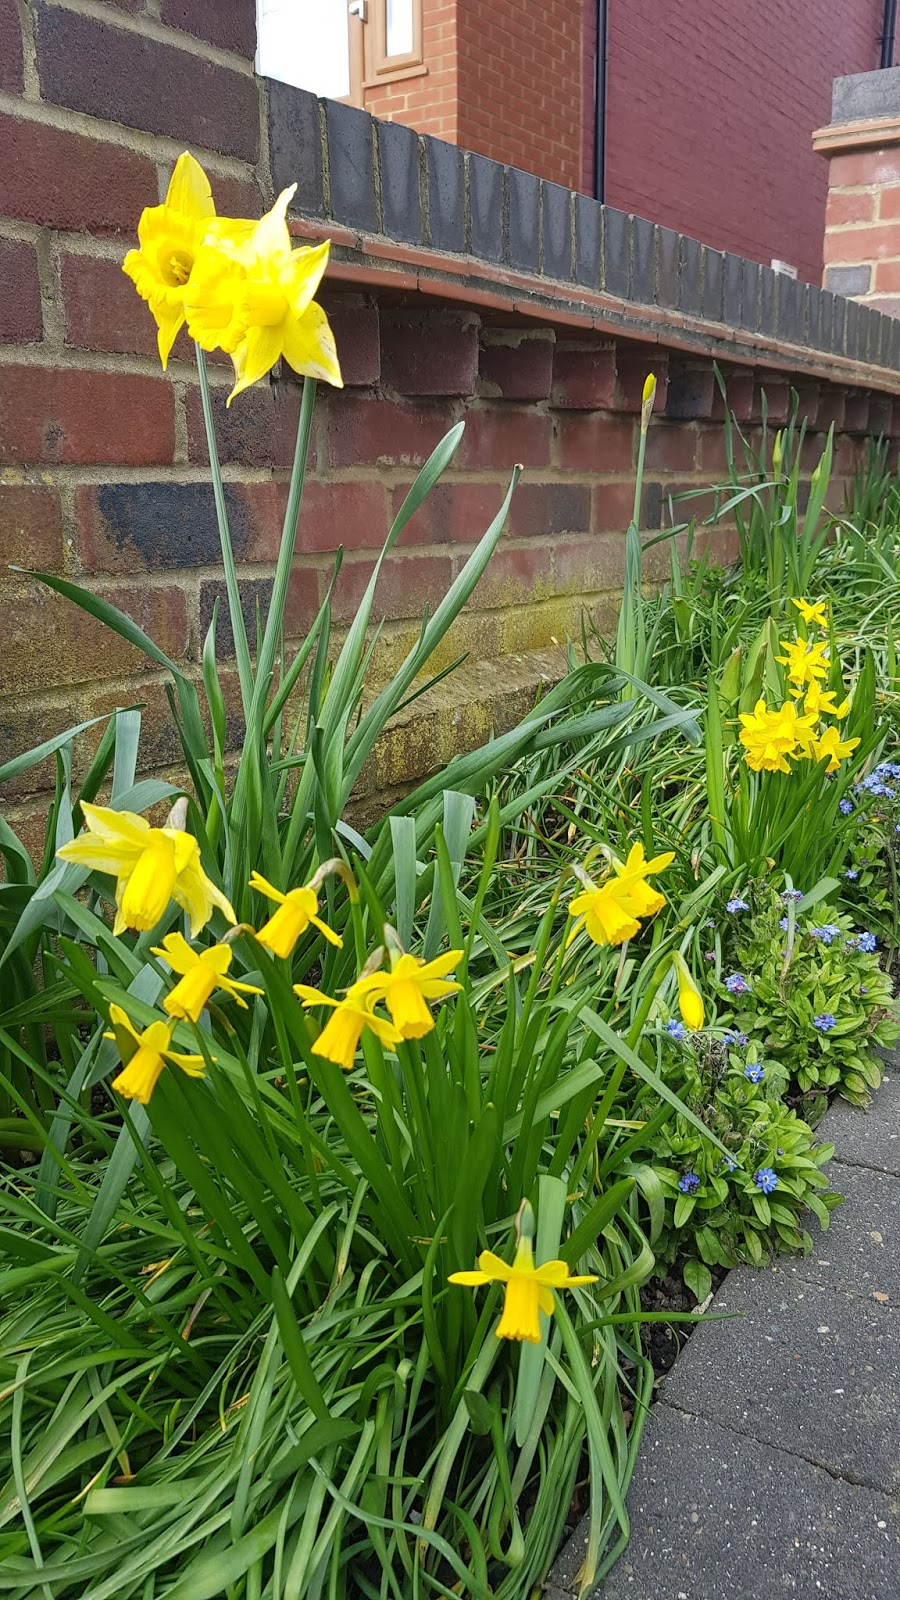 Mixed daffodils blooming, London Feb 2020